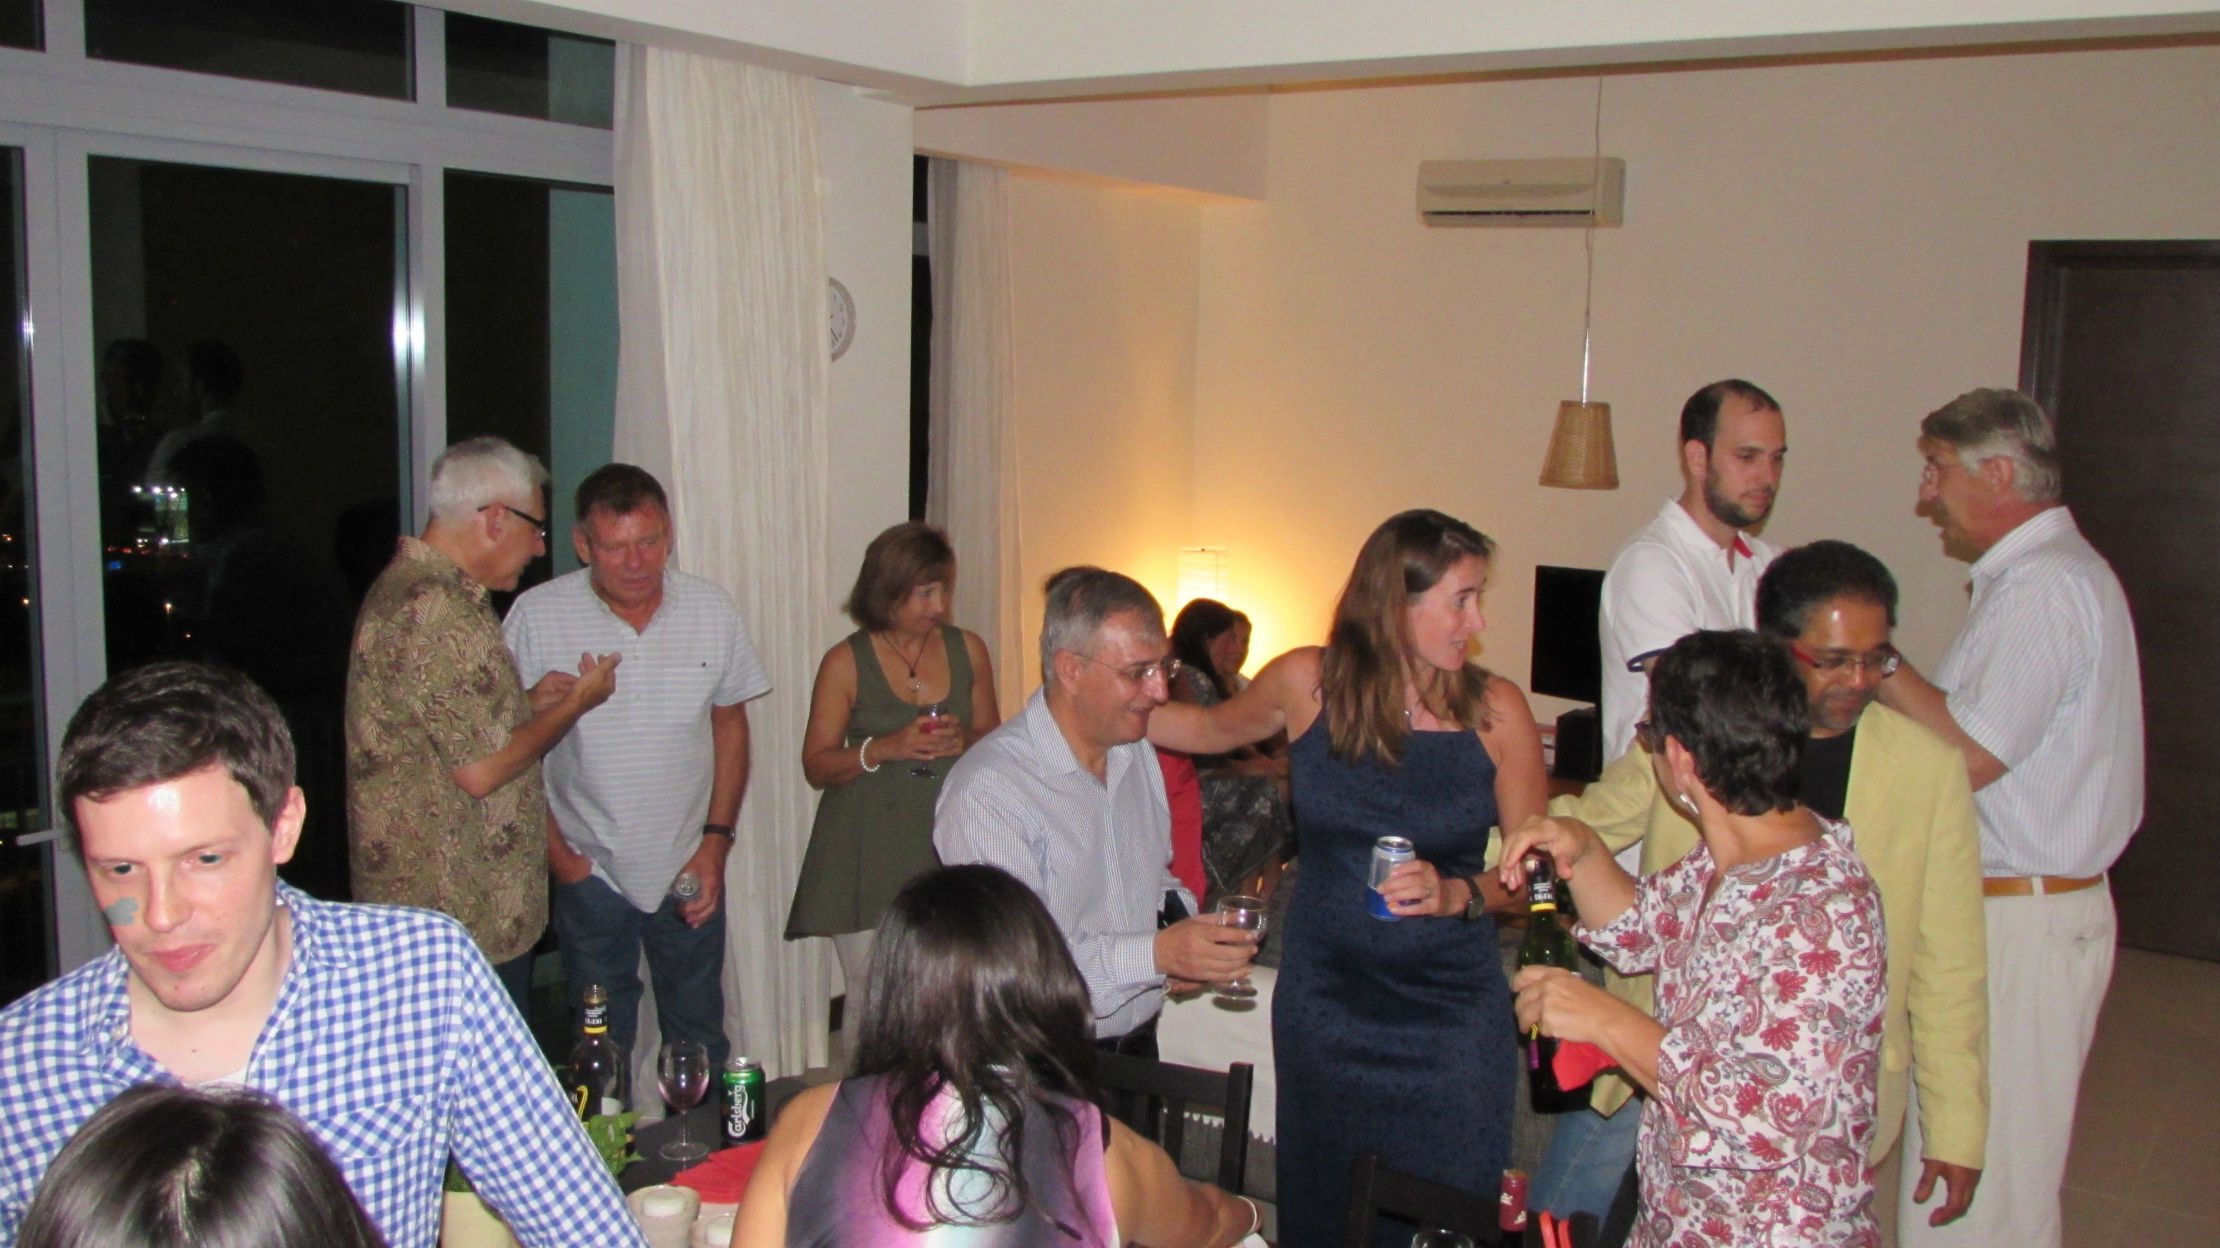 Housewarming Party in our apartment in Kuala Lumpur